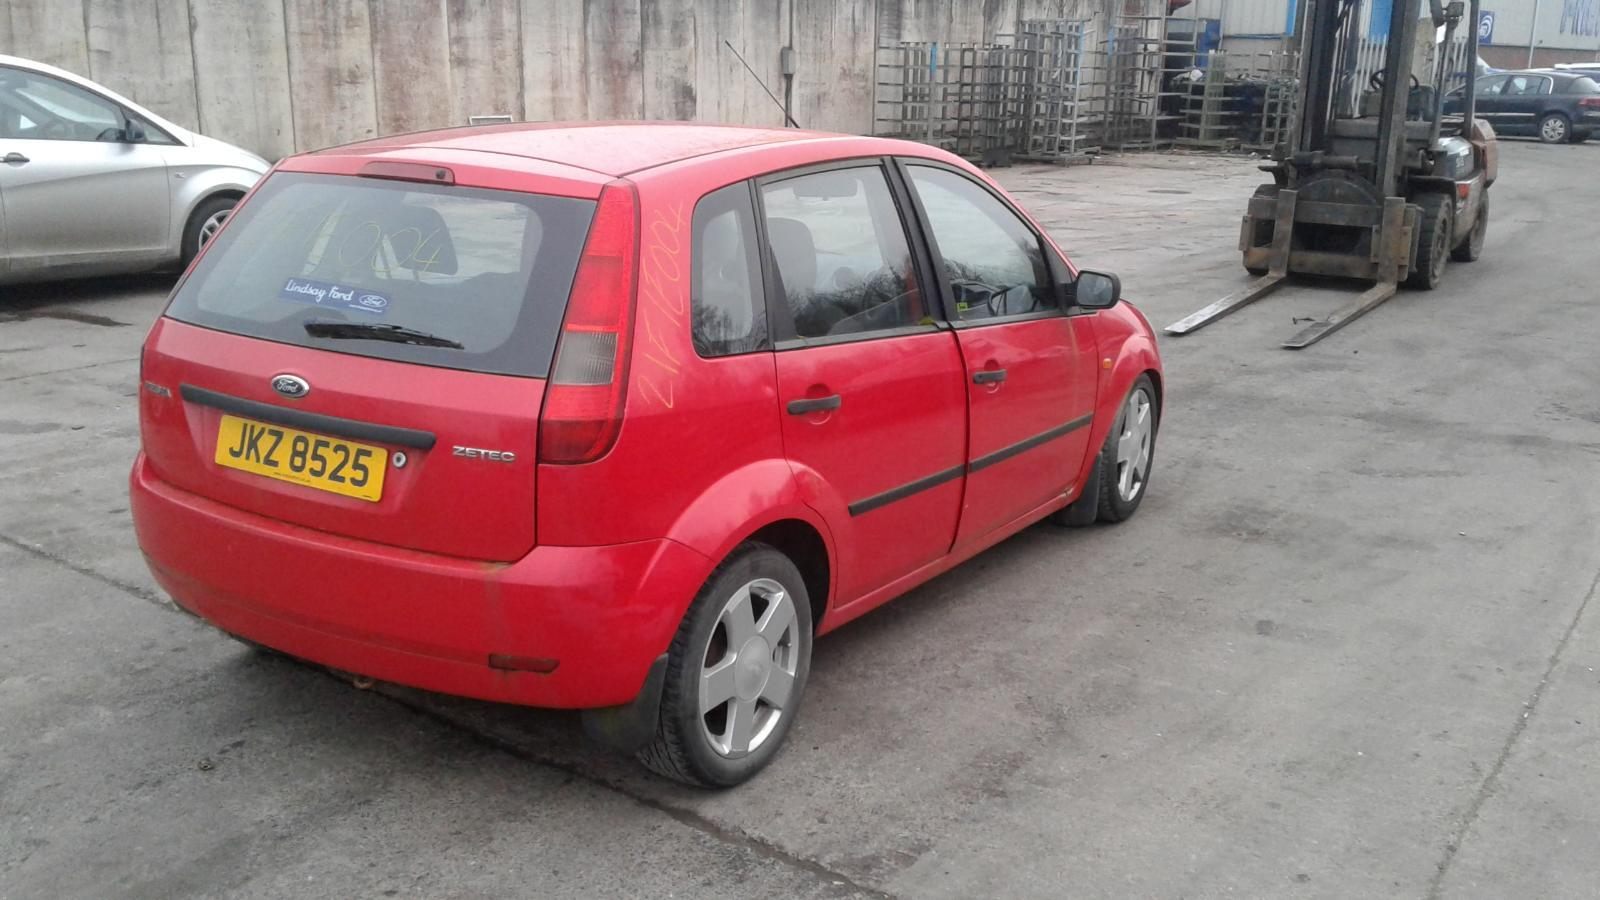 2003 FORD FIESTA Image